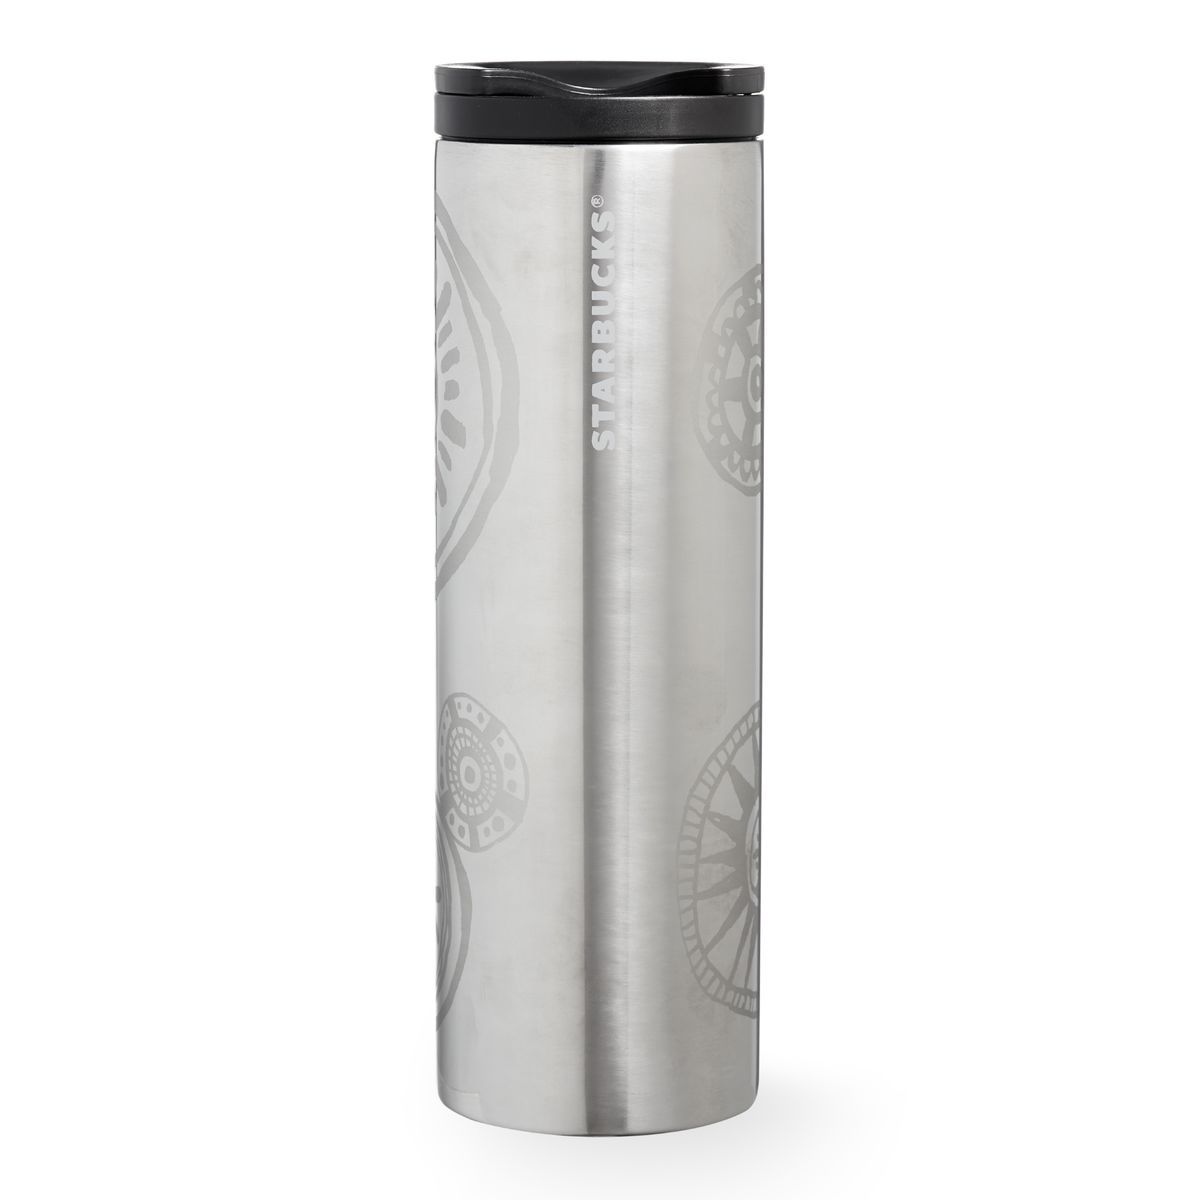 Stainless steel ornaments - A Double Walled Stainless Steel Coffee Tumbler Featuring Ornament Art And A High